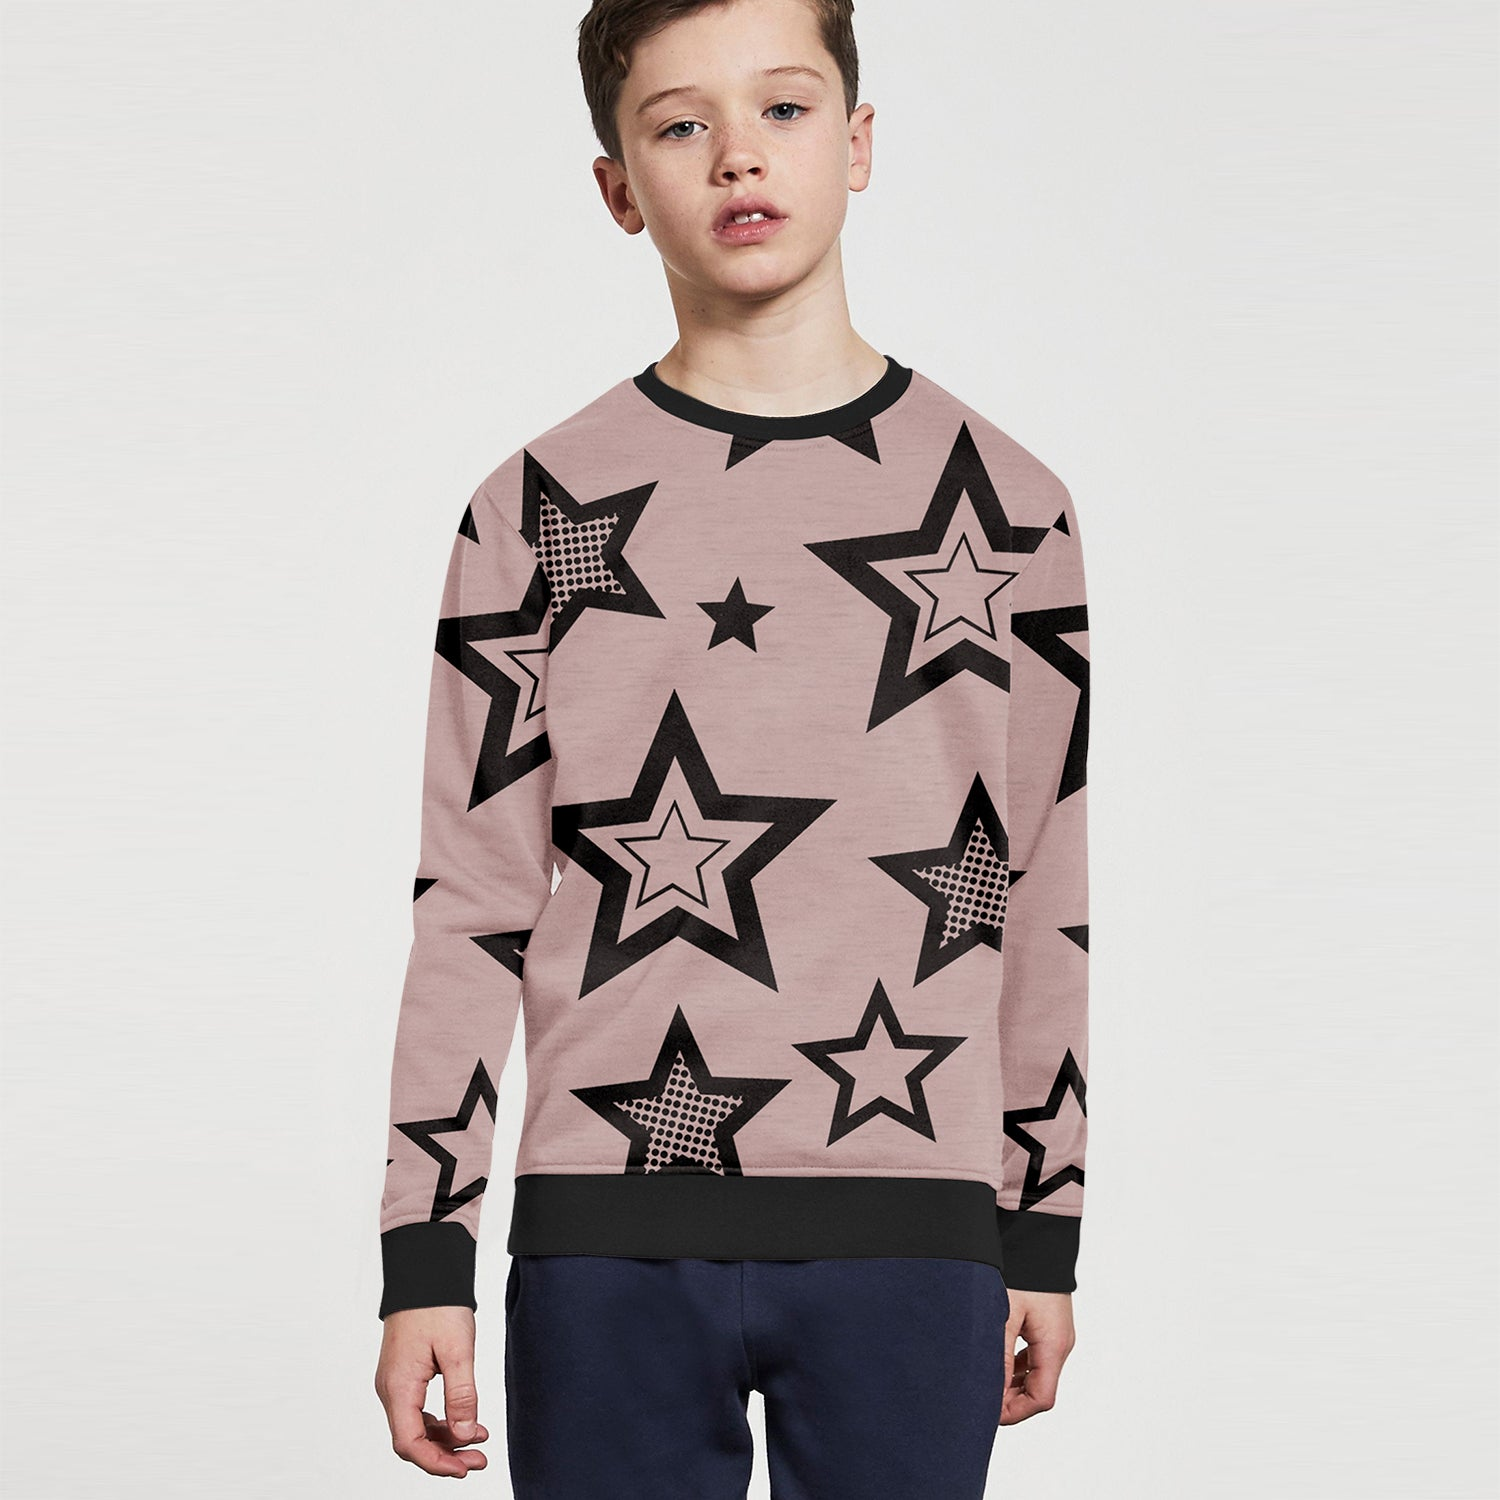 ZBaby Terry Fleece Sweatshirt For Kids-Pink Melange with Allover Stars Print-BE12829